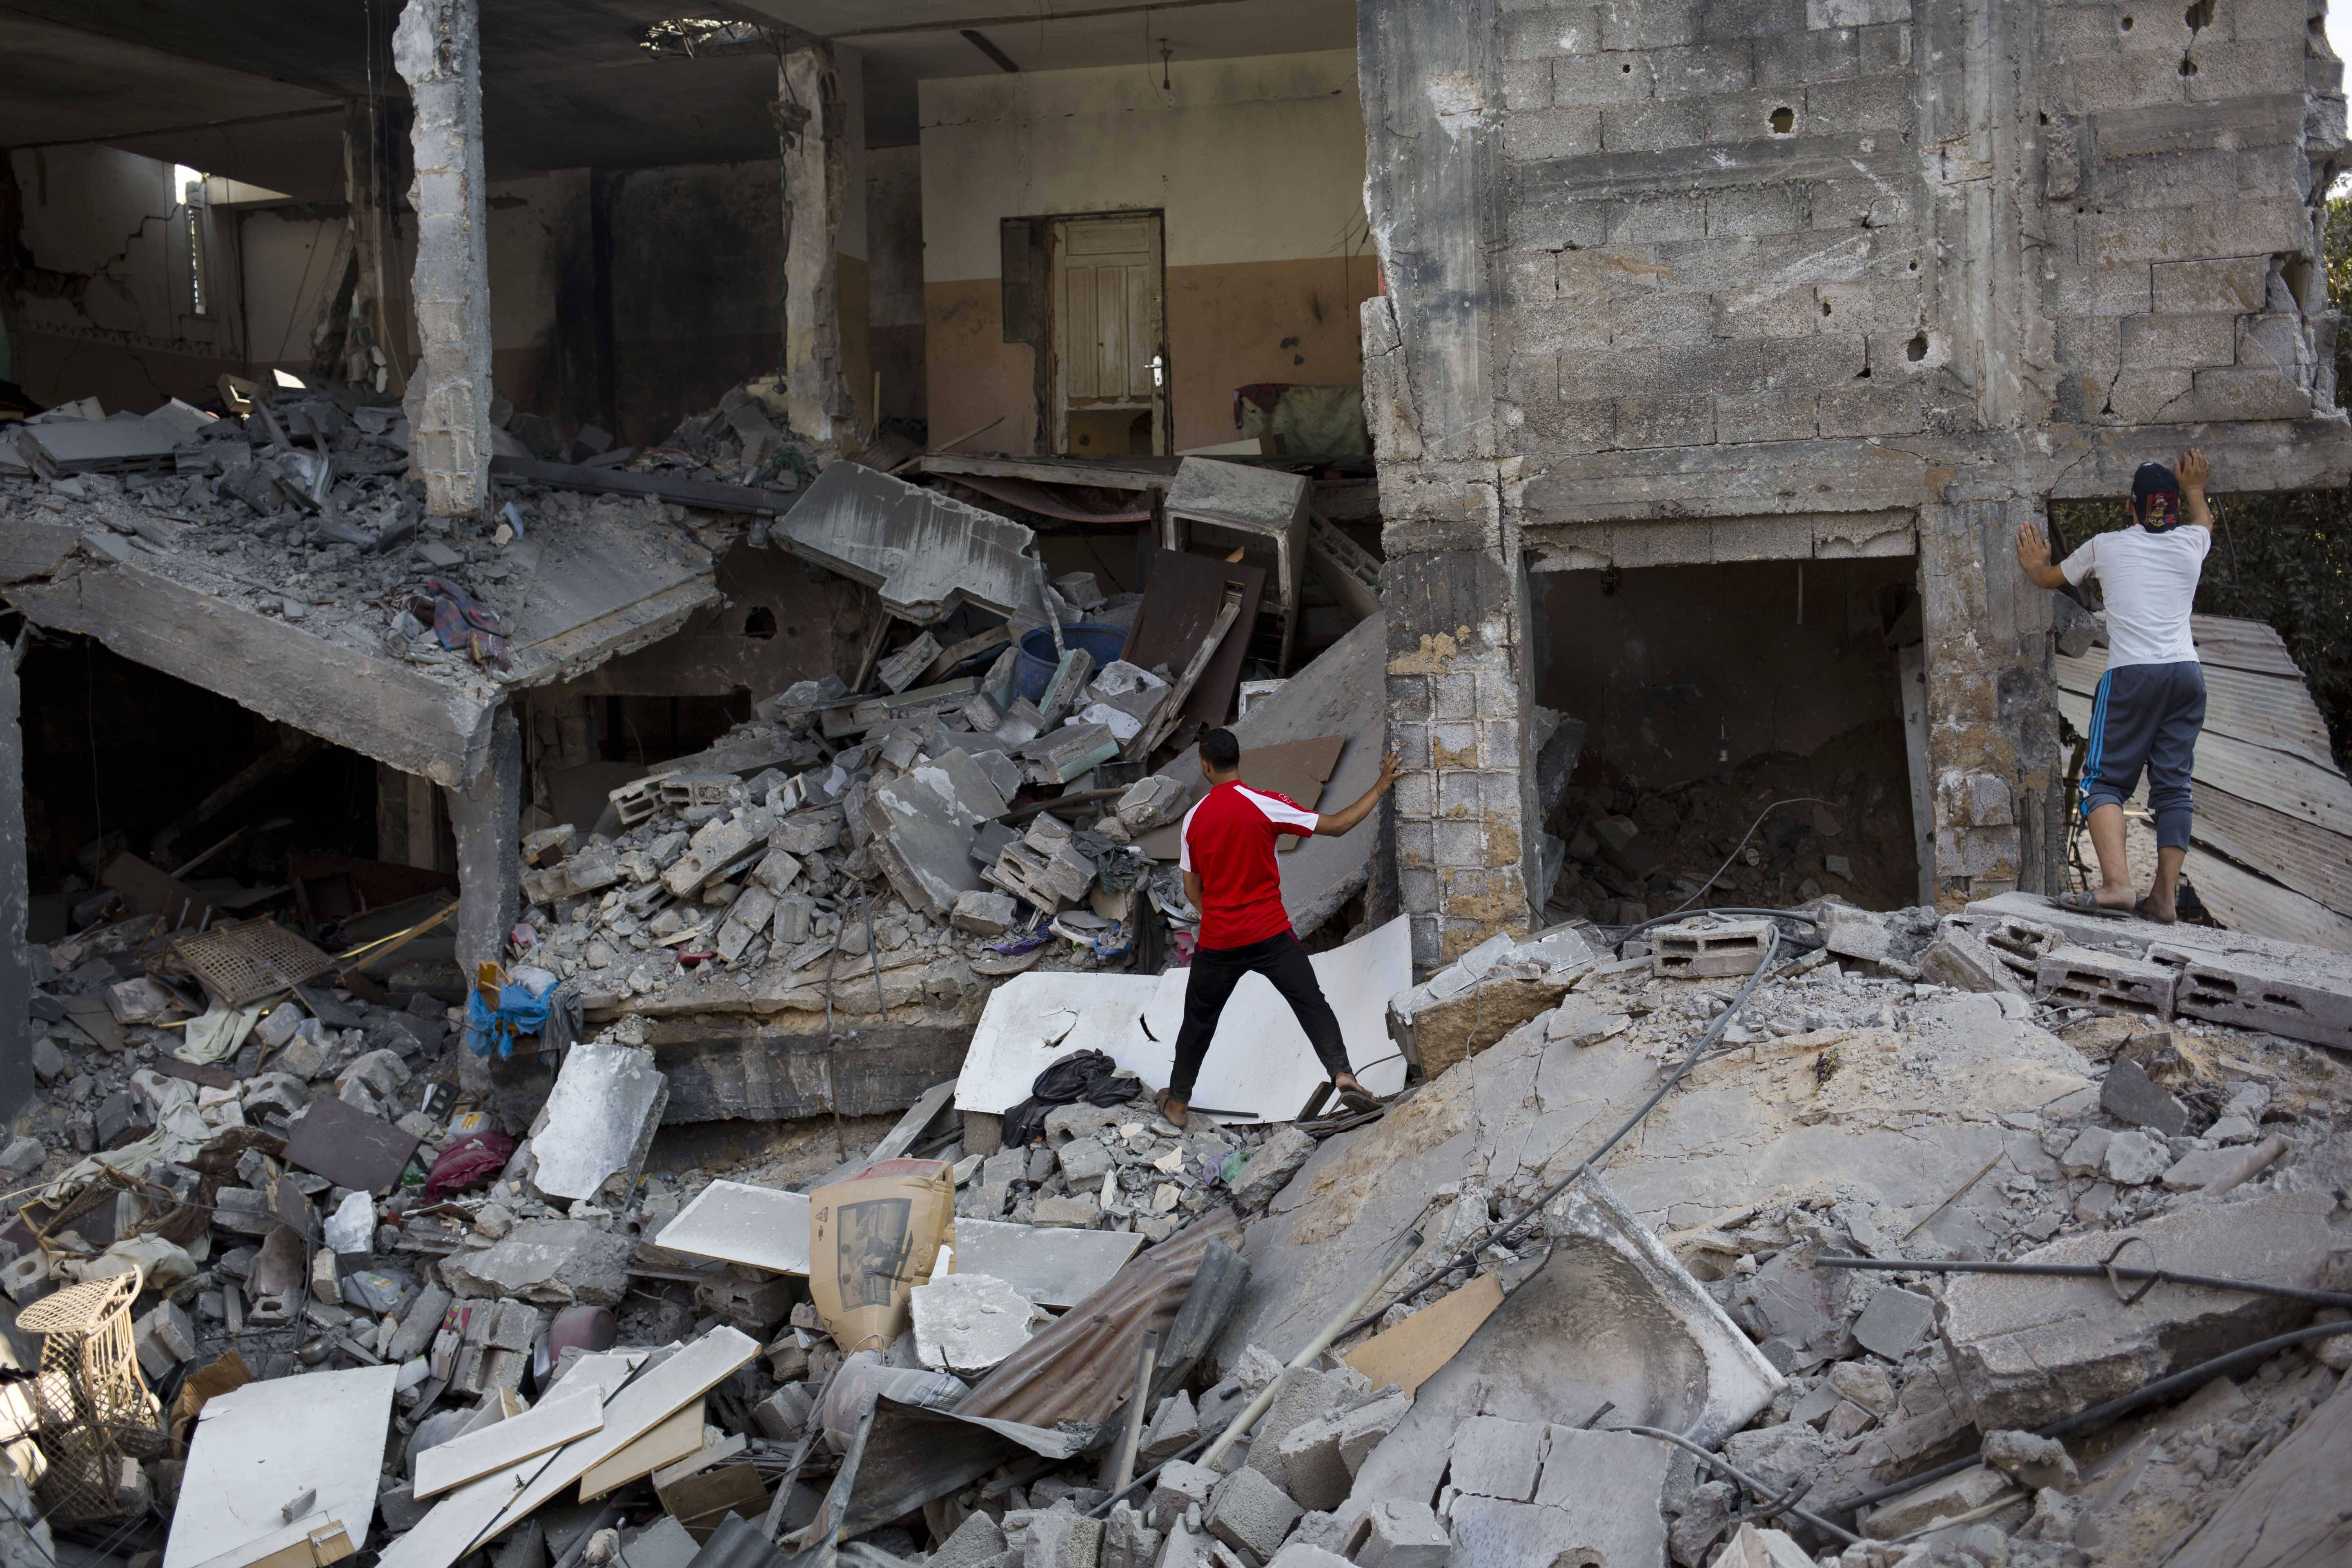 Palestinians inspect a destroyed house in the heavily bombed Gaza City neighborhood of Shijaiyah, close to the Israeli border, Friday, Aug. 1, 2014. A three-day Gaza cease-fire that began Friday quickly unraveled, with Israel and Hamas accusing each other of violating the truce.